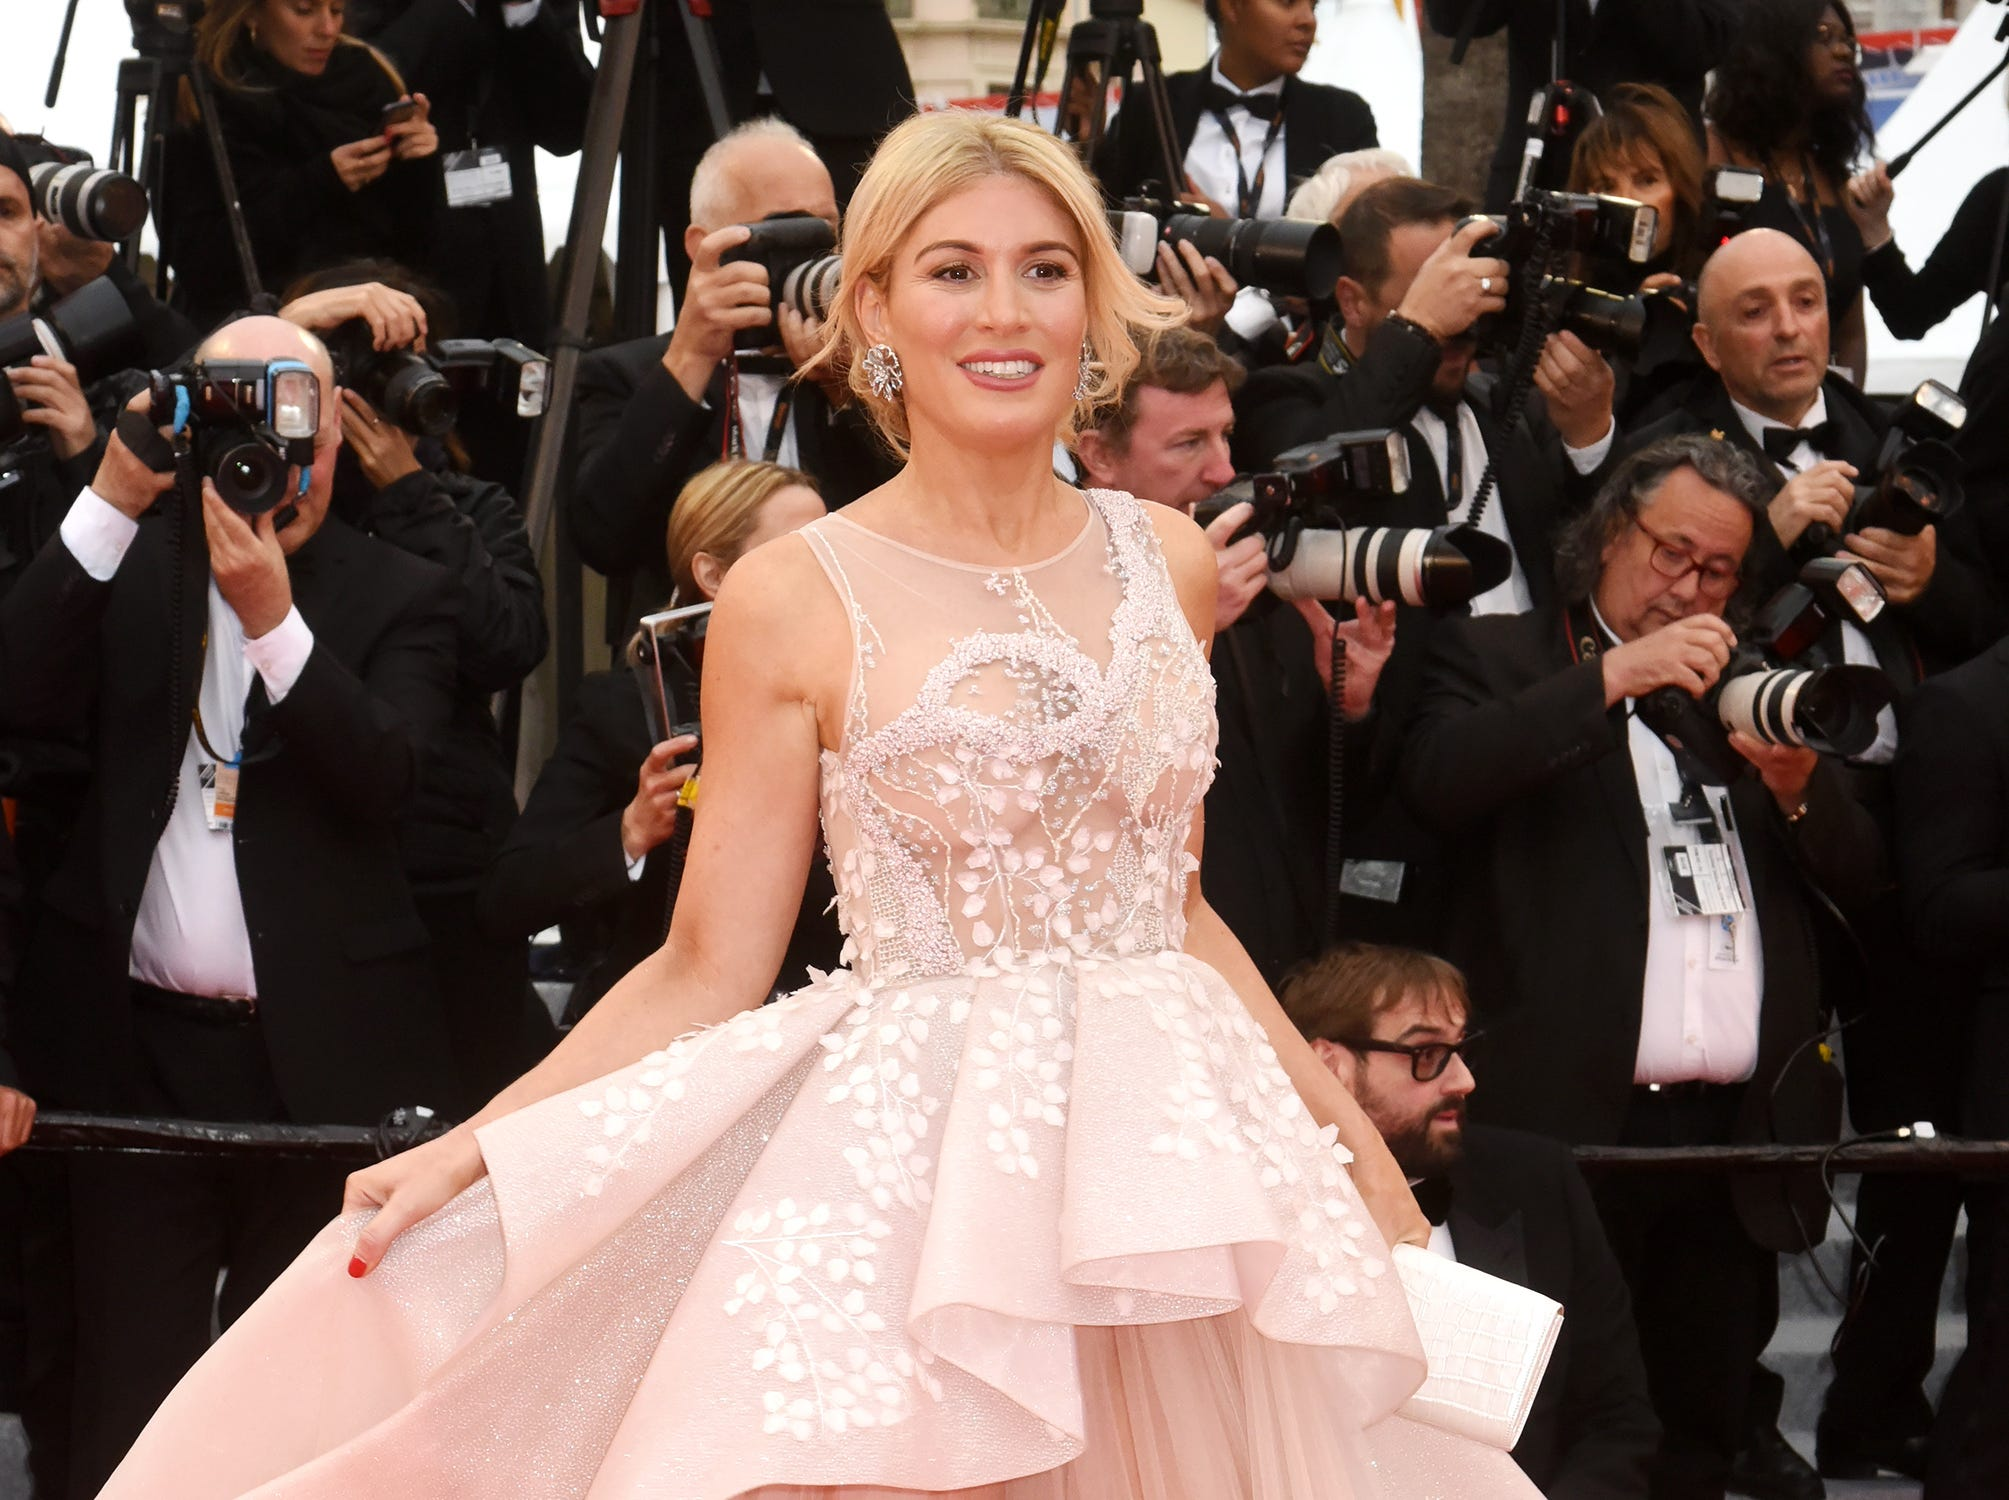 """Hofit Golan attends the screening of """"Pain And Glory (Dolor Y Gloria/Douleur Et Gloire)"""" during the 72nd annual Cannes Film Festival on May 17, 2019 in Cannes, France."""